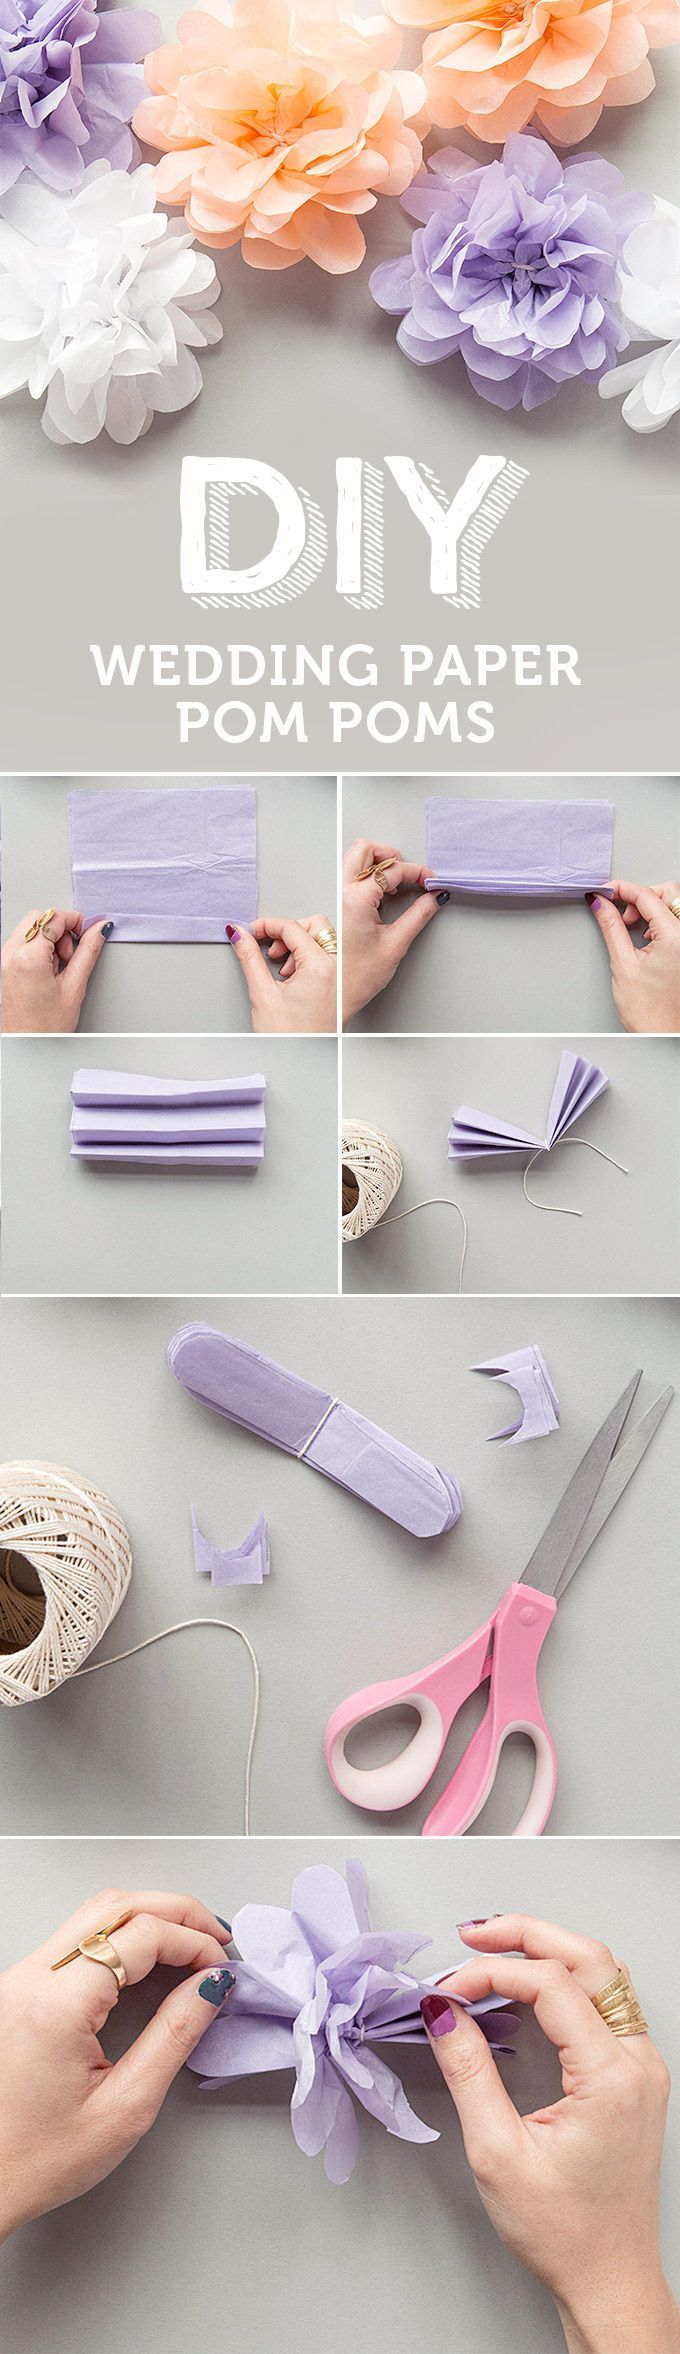 Wedding decorations, DIY decorations, DIY wedding, paper crafts, party crafts, http://evermine.com, evermine